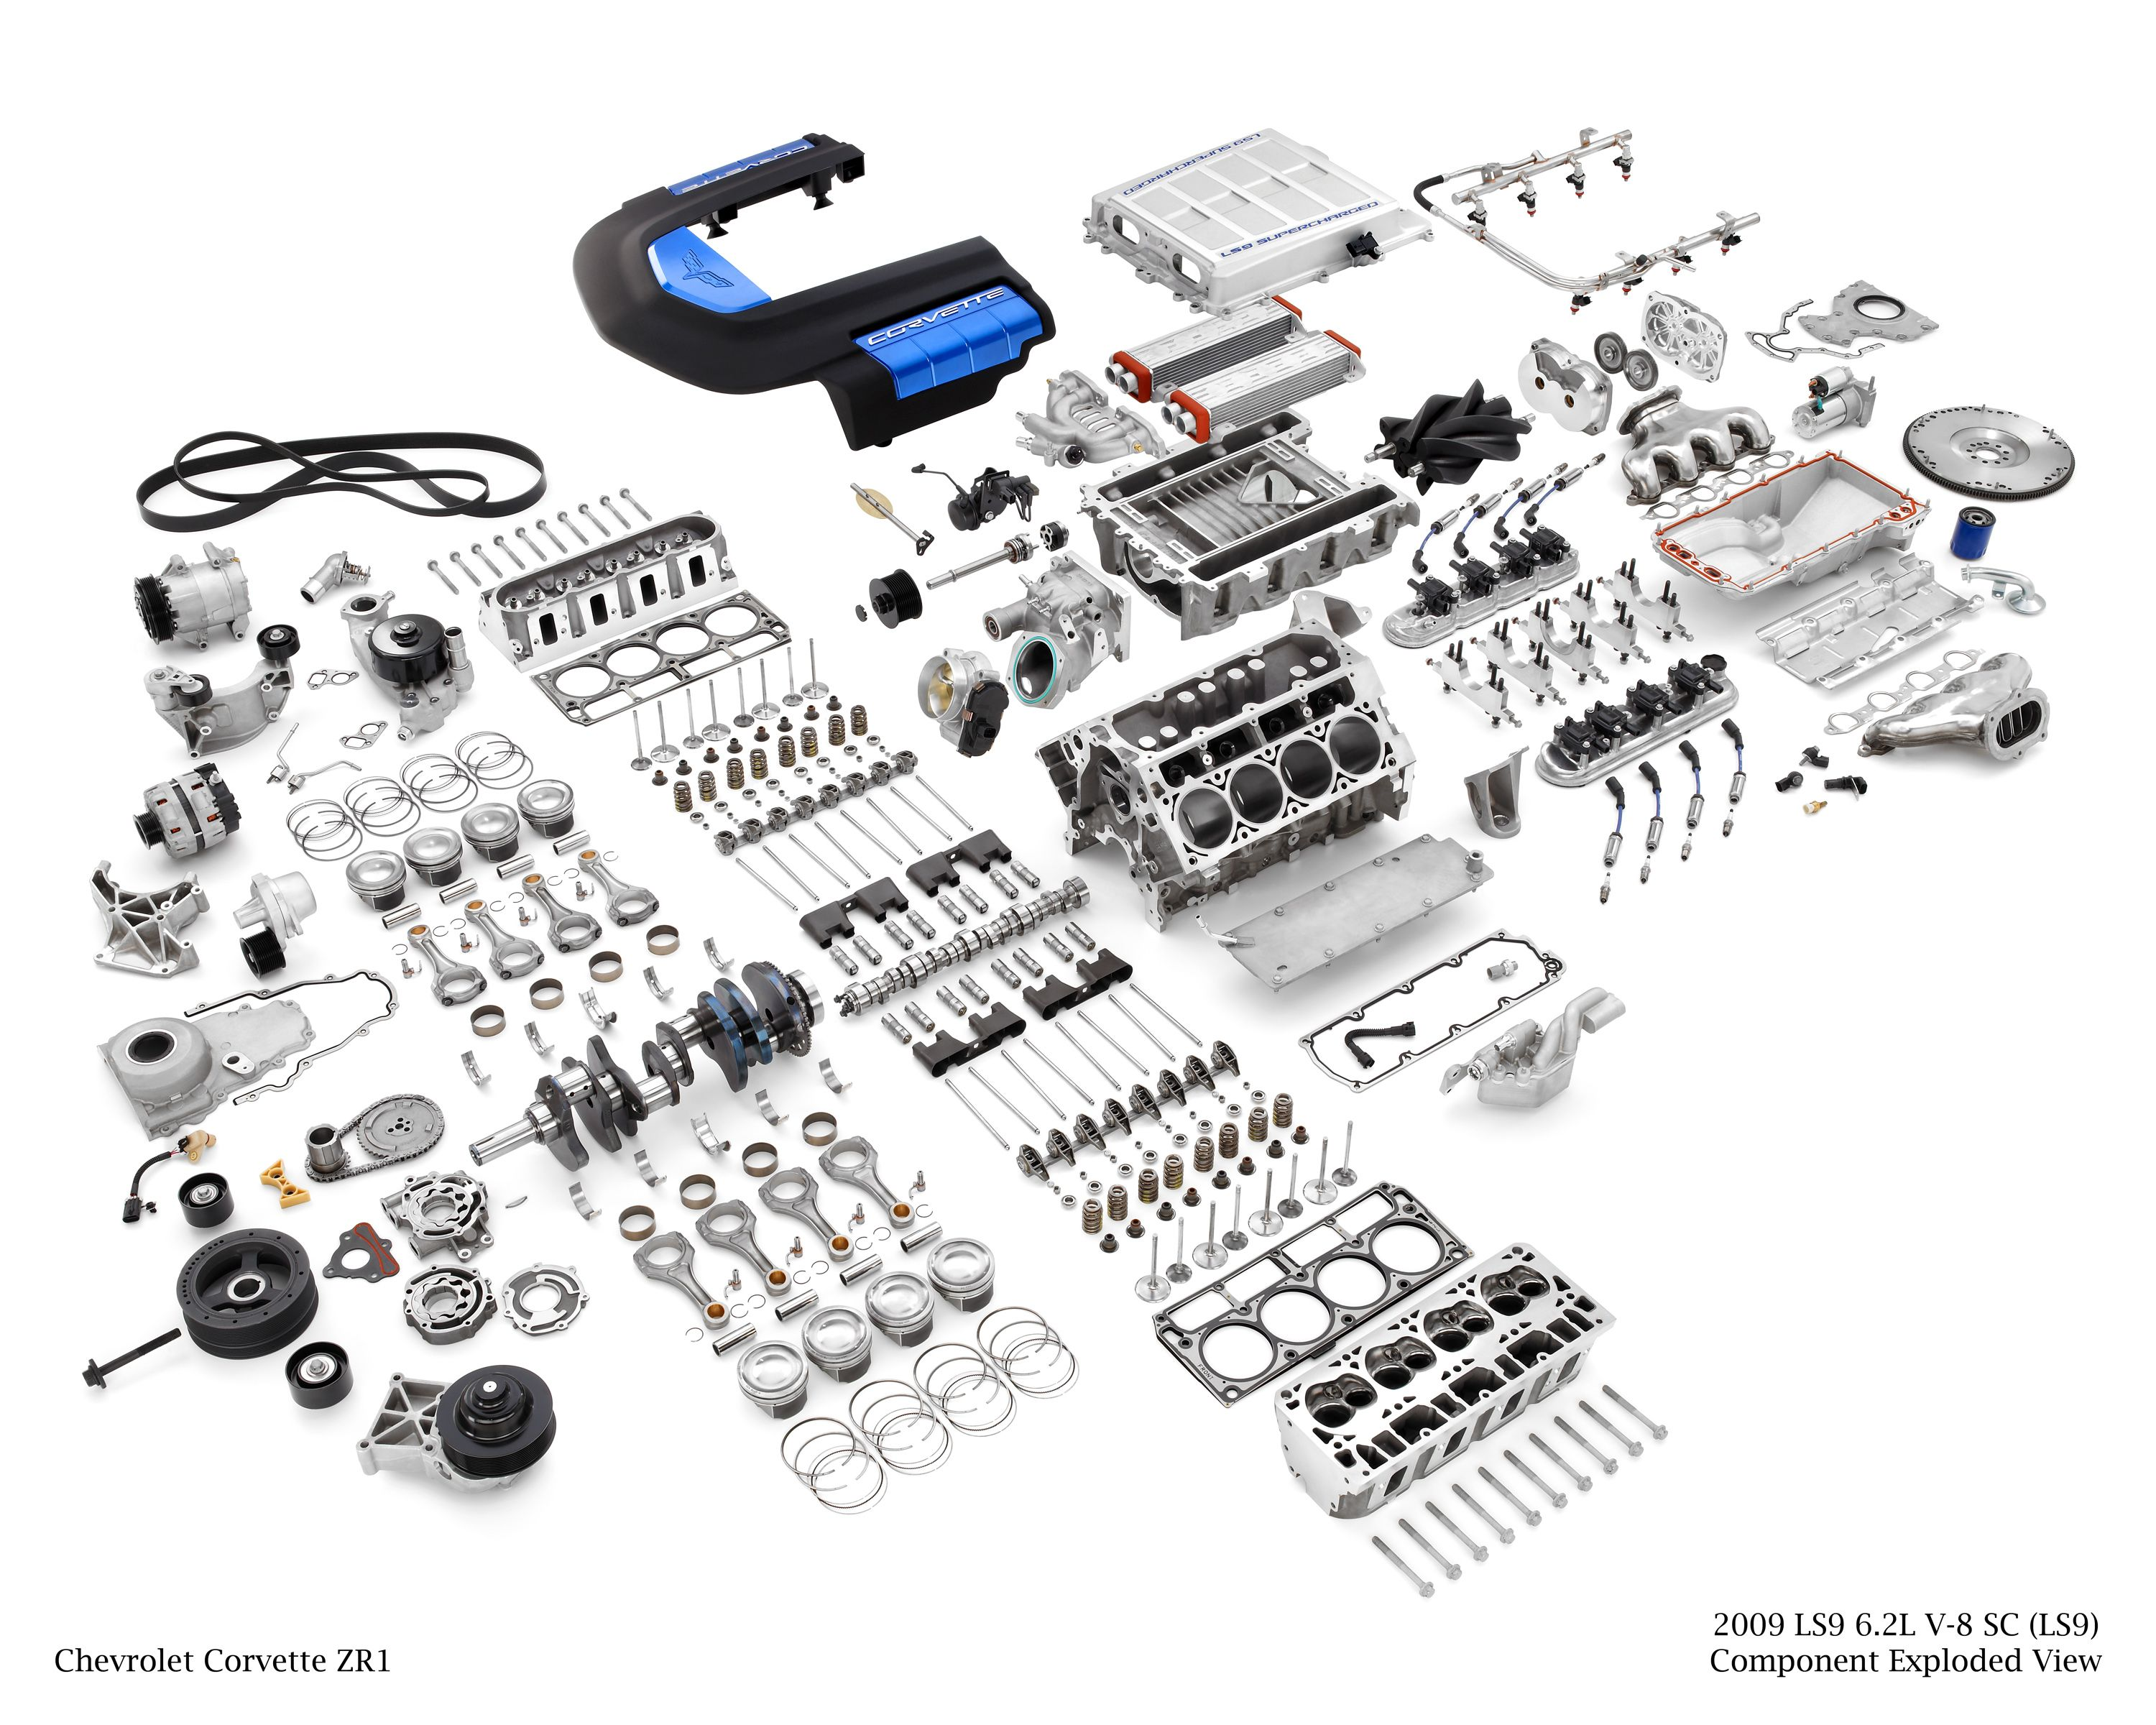 Corvette Zr1 Ls9 Supercharged 6 2l V8 Engine Exploded View